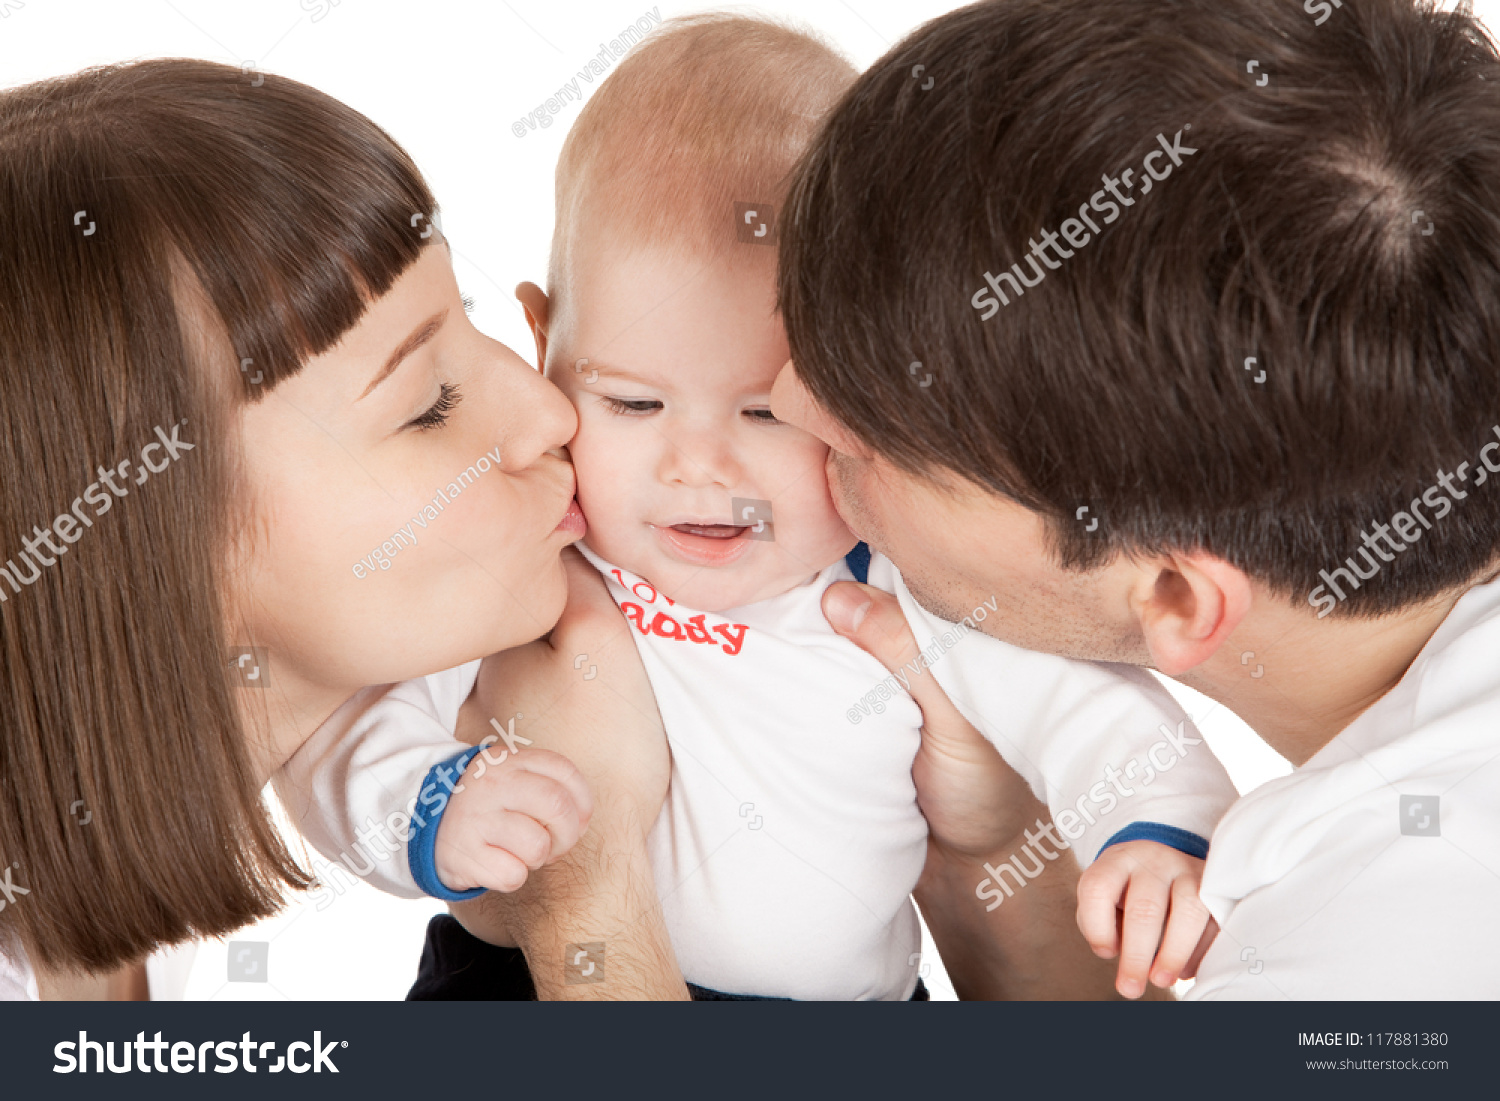 kissing the boy all over